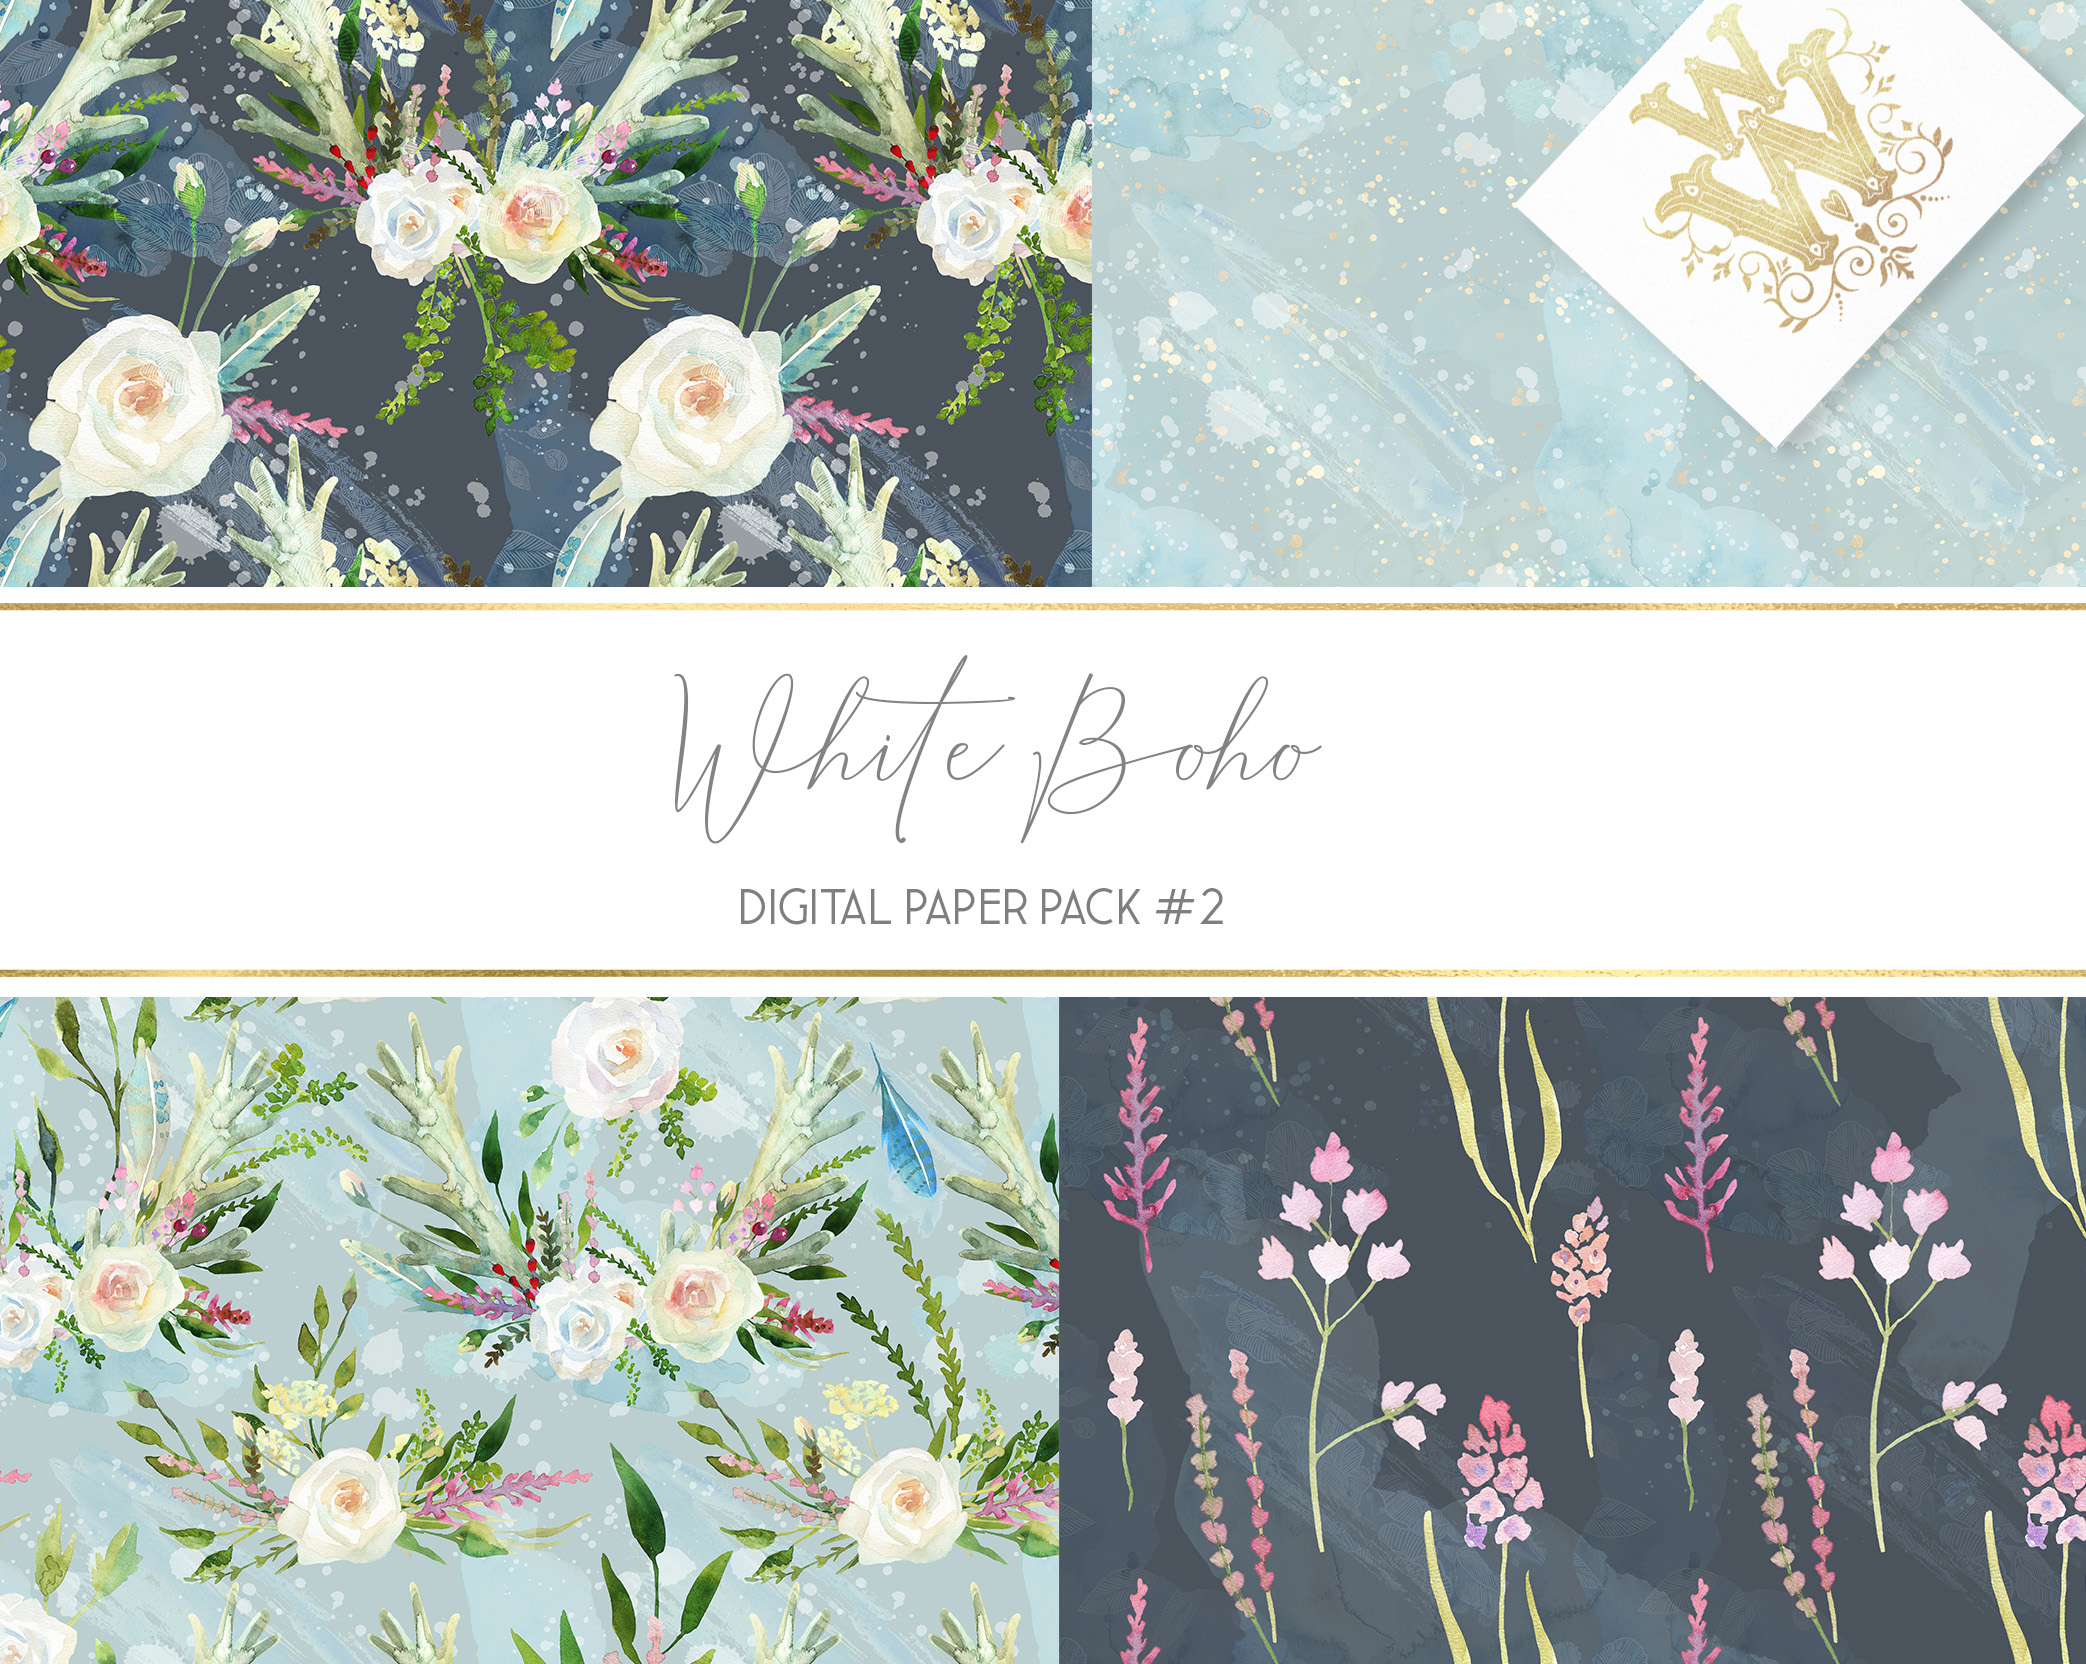 Boho chic digital paper pack, watercolor floral seamless example image 5